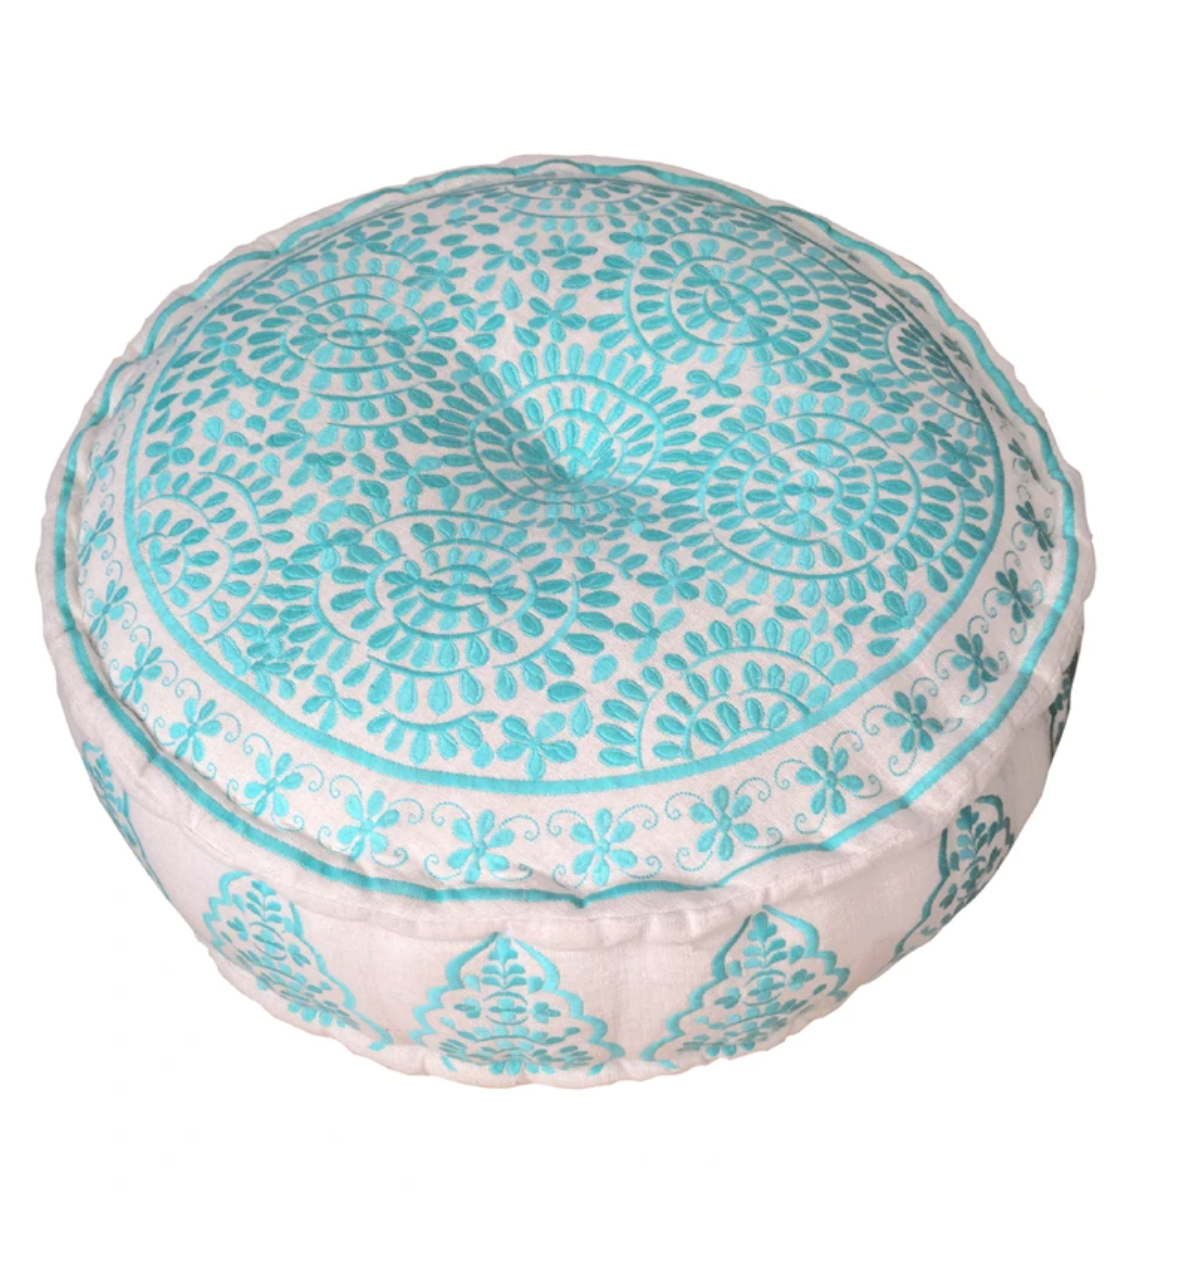 Bombay Duck Nomad Embroidered Pouf Turquiose